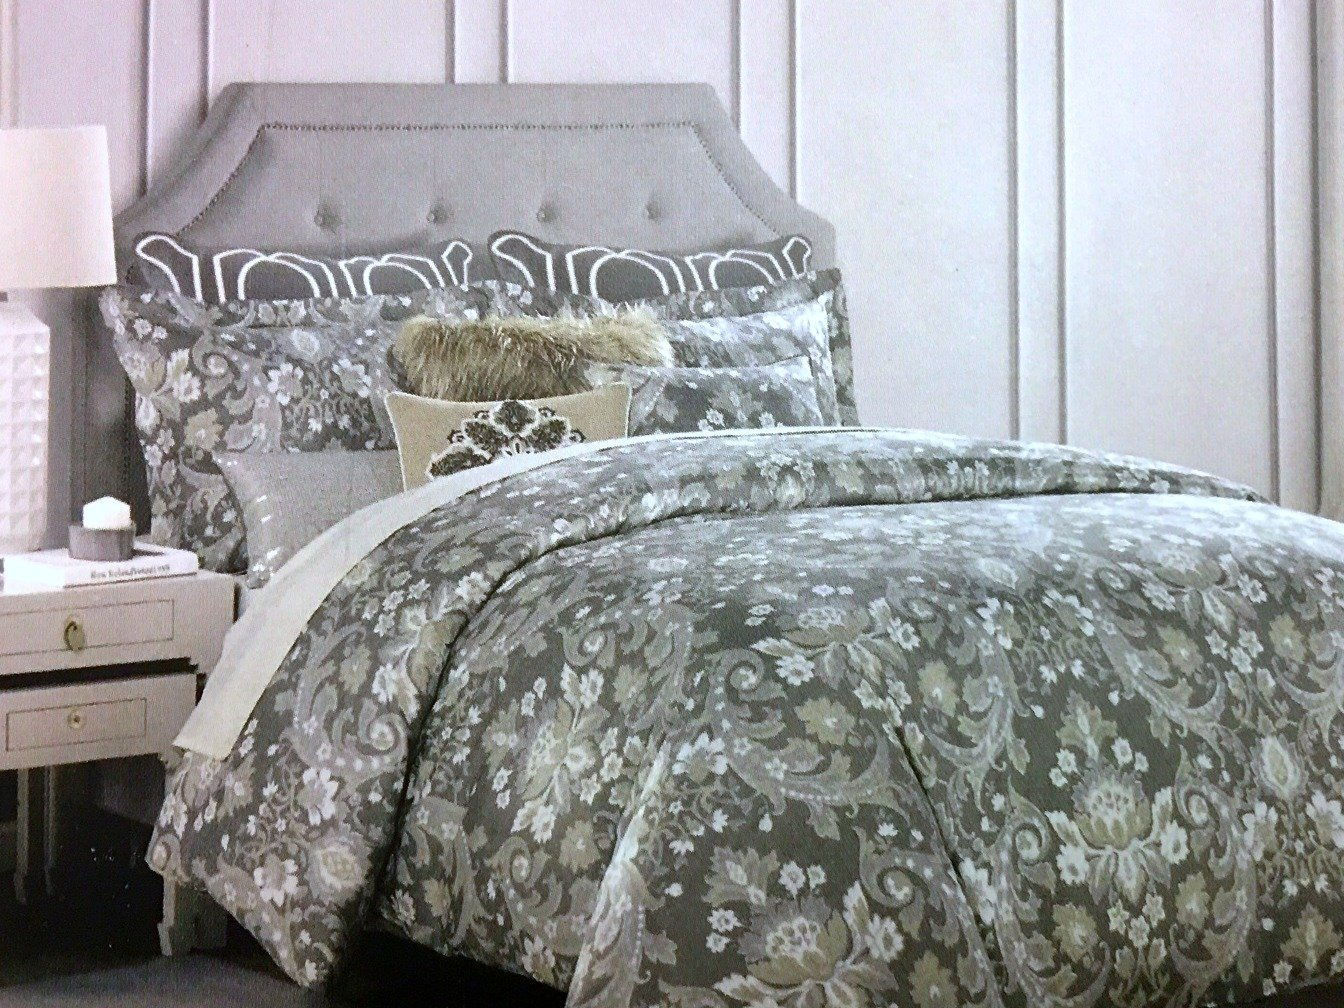 Tahari Home Full Queen 3 Piece Duvet Set | Sophisticated Floral Damask Medallion Pattern in Gray,Taupe, Beige, Cream, with Silver Highlights | 100% Easy Care Cotton, 300 TC